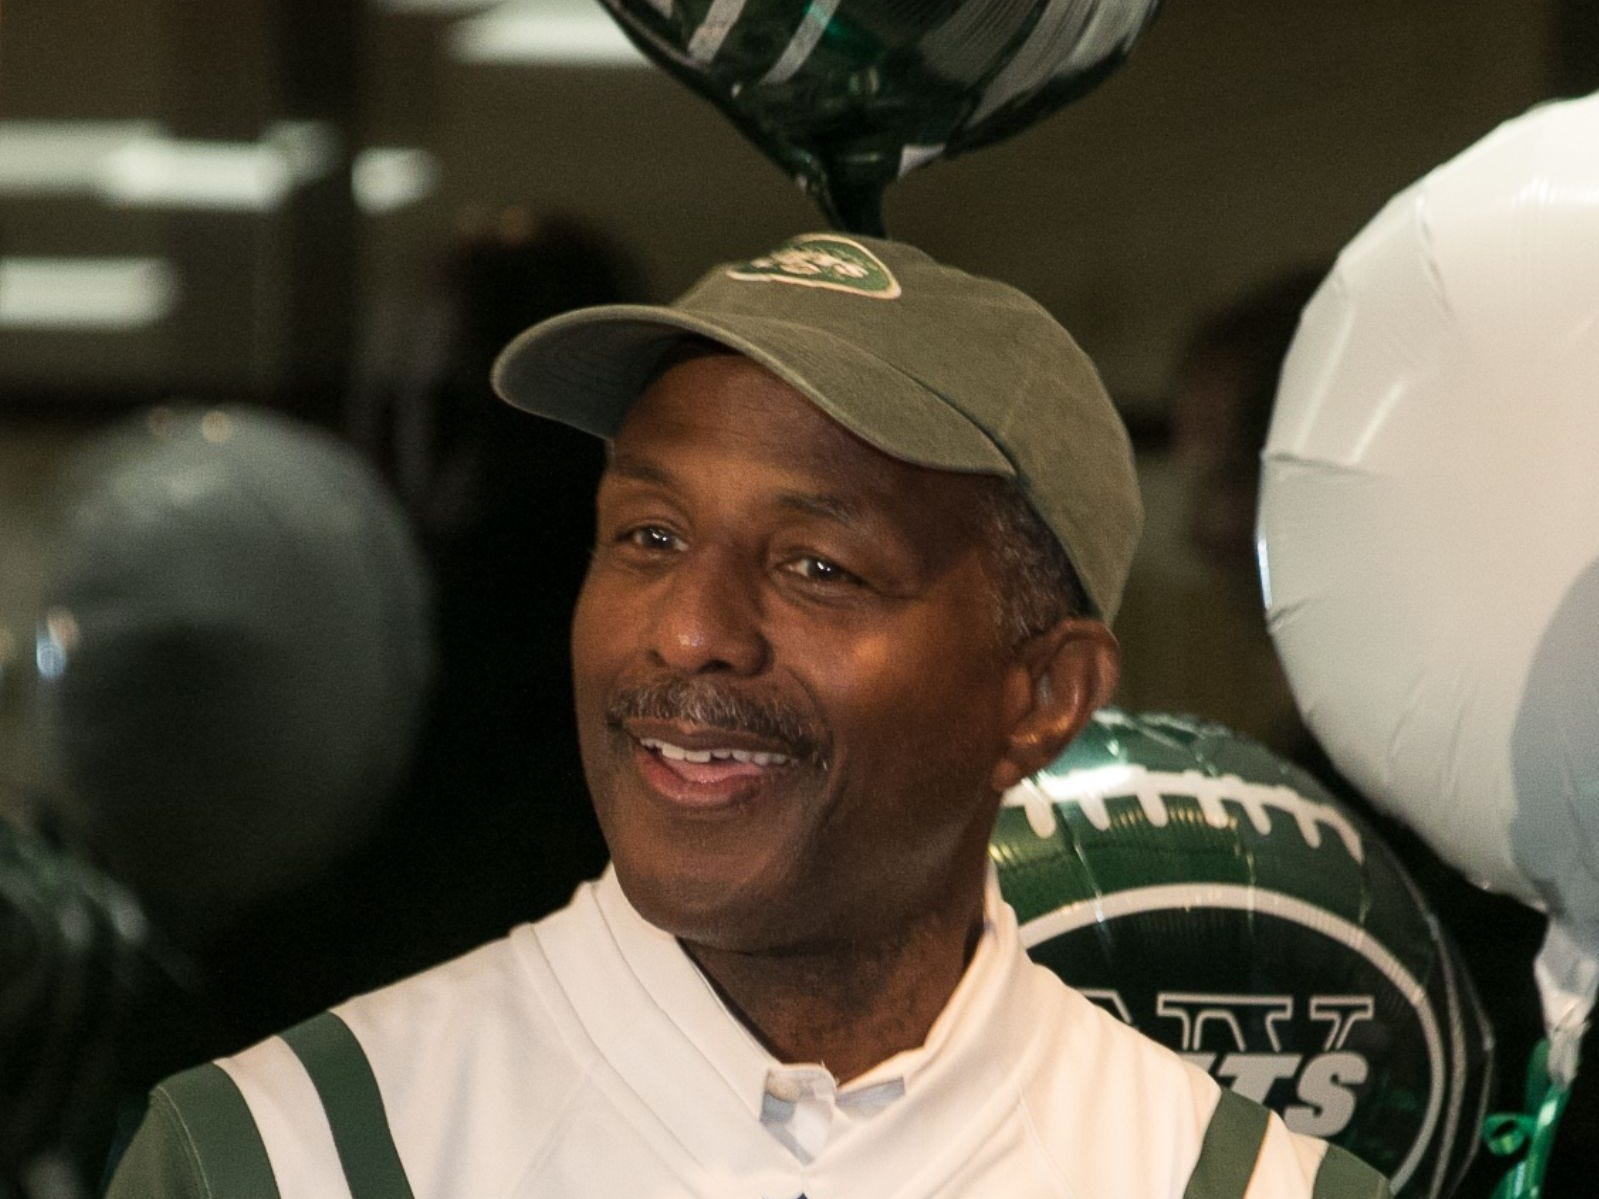 Former NY Jet Bruce Harper. Englewood Health hosted its Men's Health and Football event with former Jets and Giants players and Don La Greca from ESPN radio. Attendees watched the Thursday night football game while receiving advice about staying healthy and tackling health problems early on. 09/20/2018